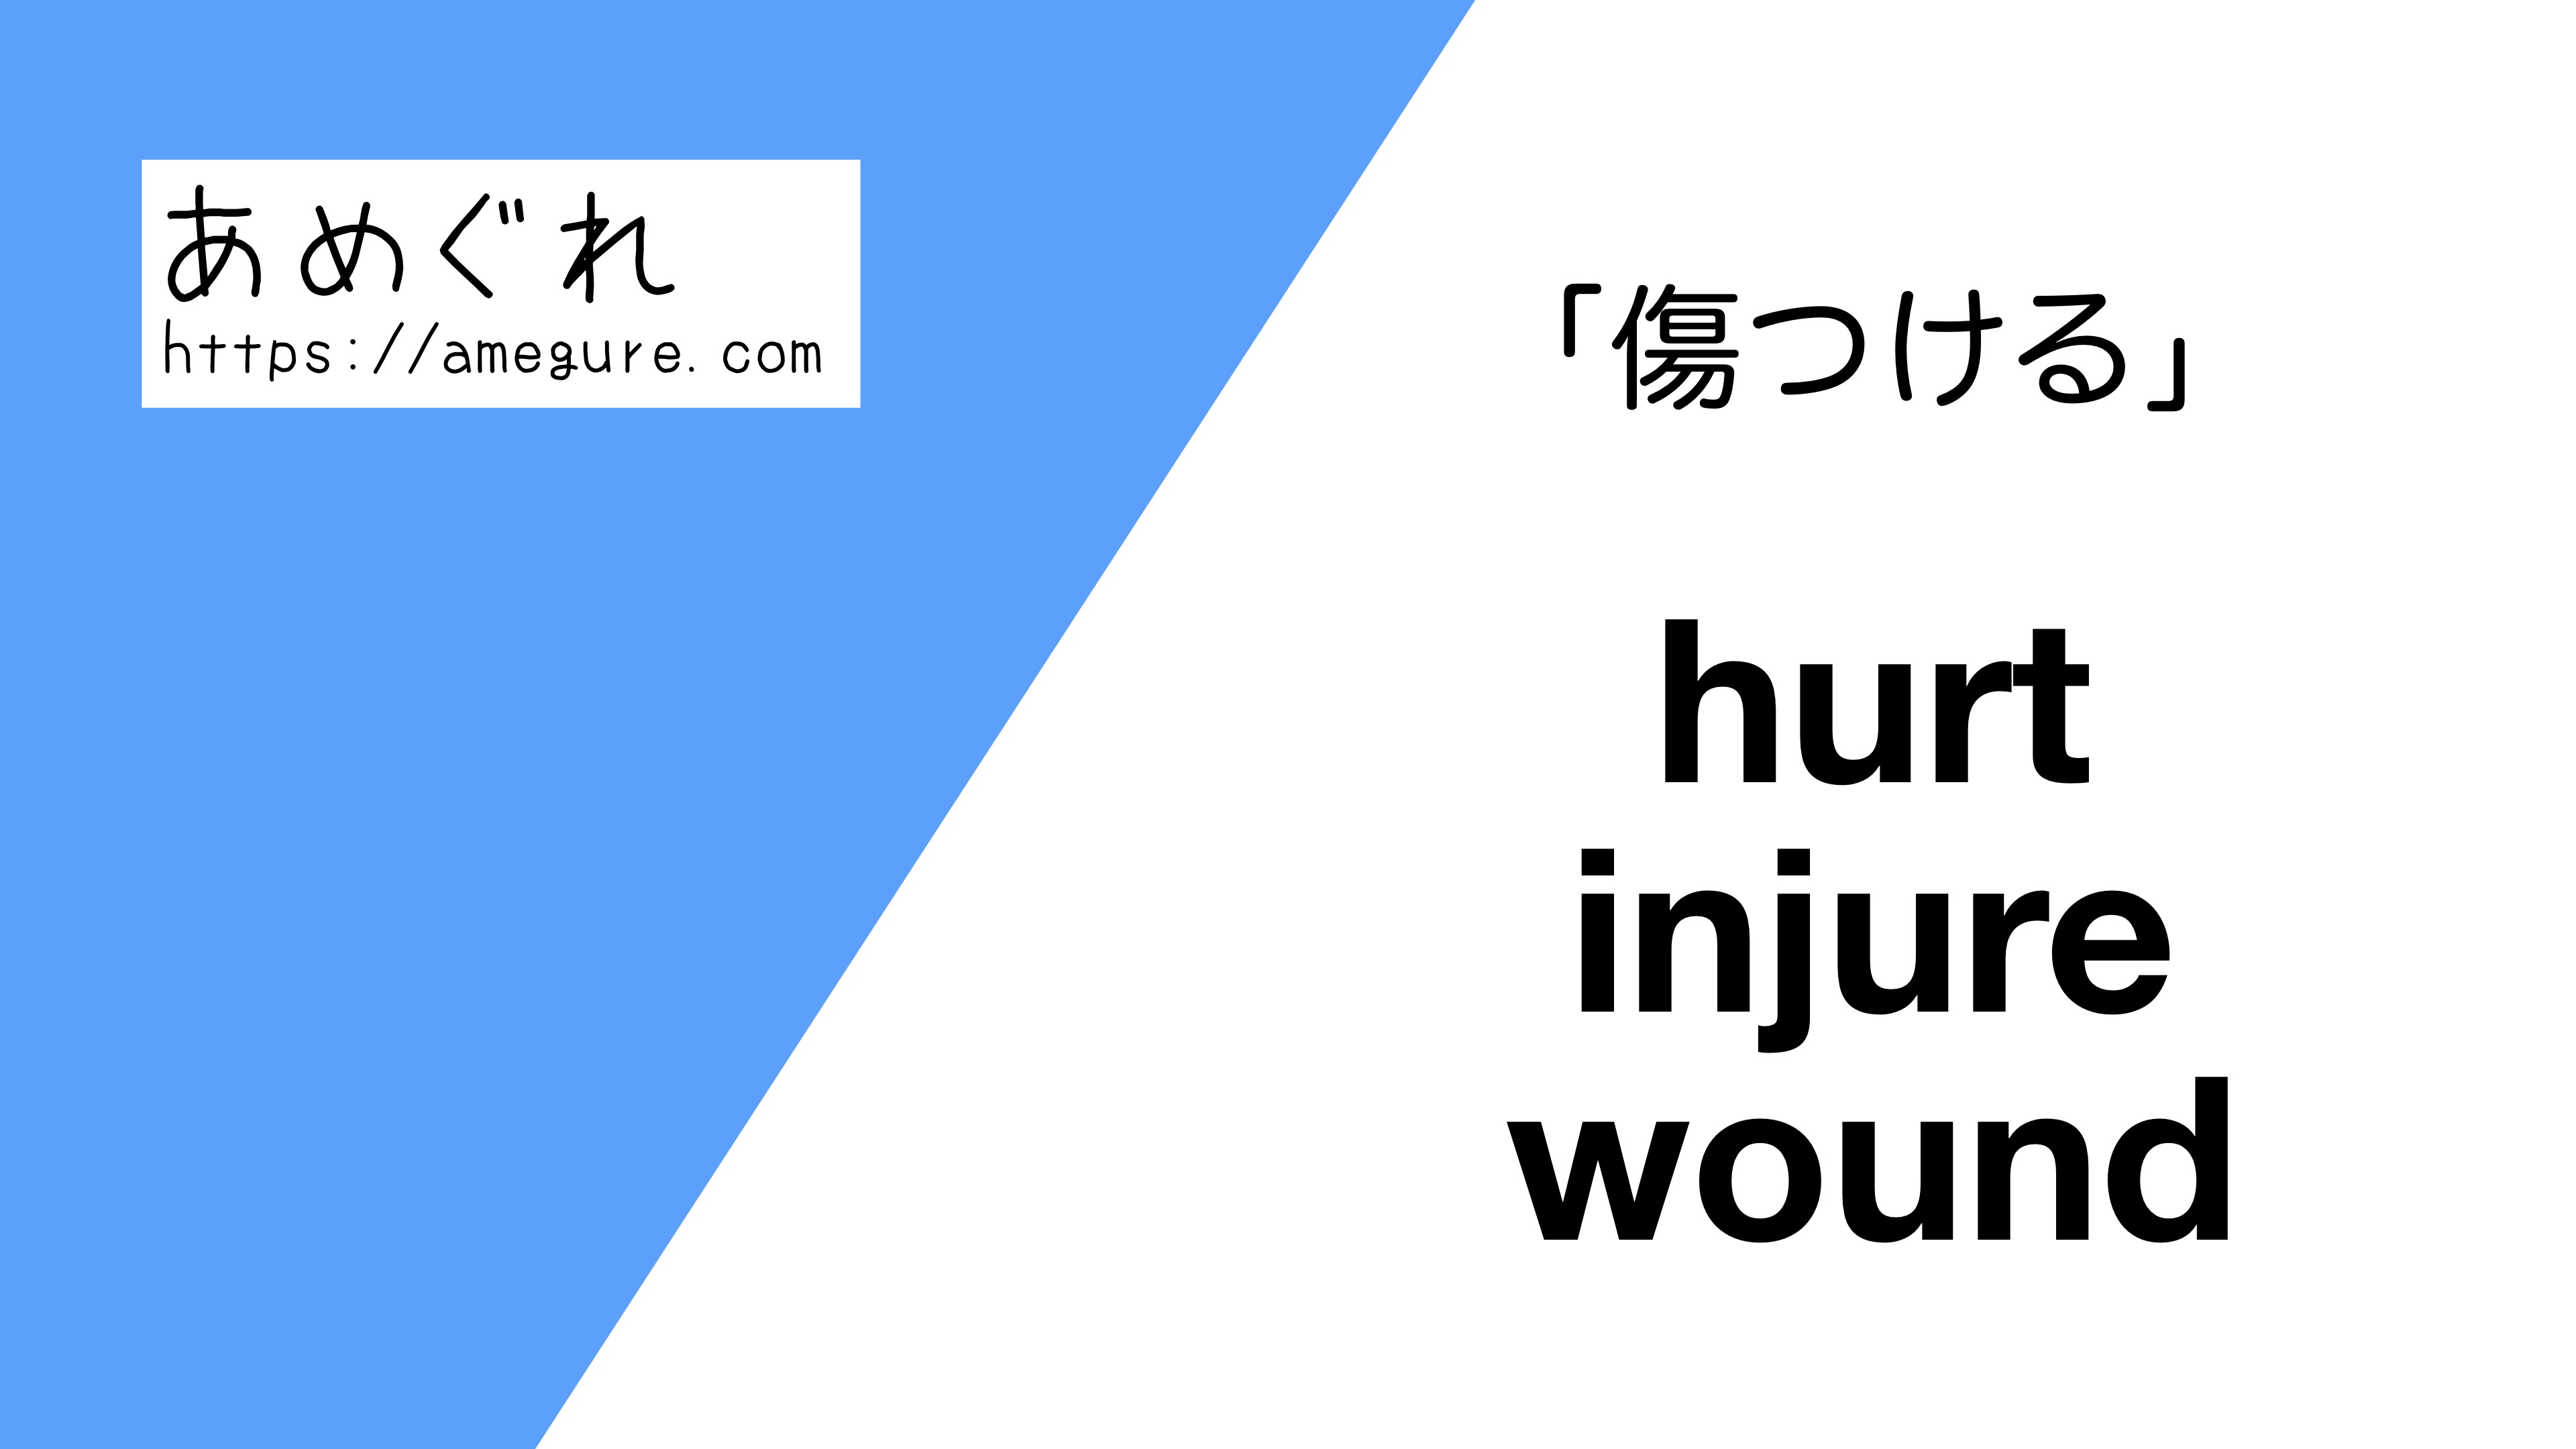 hurt-injure-wound違い